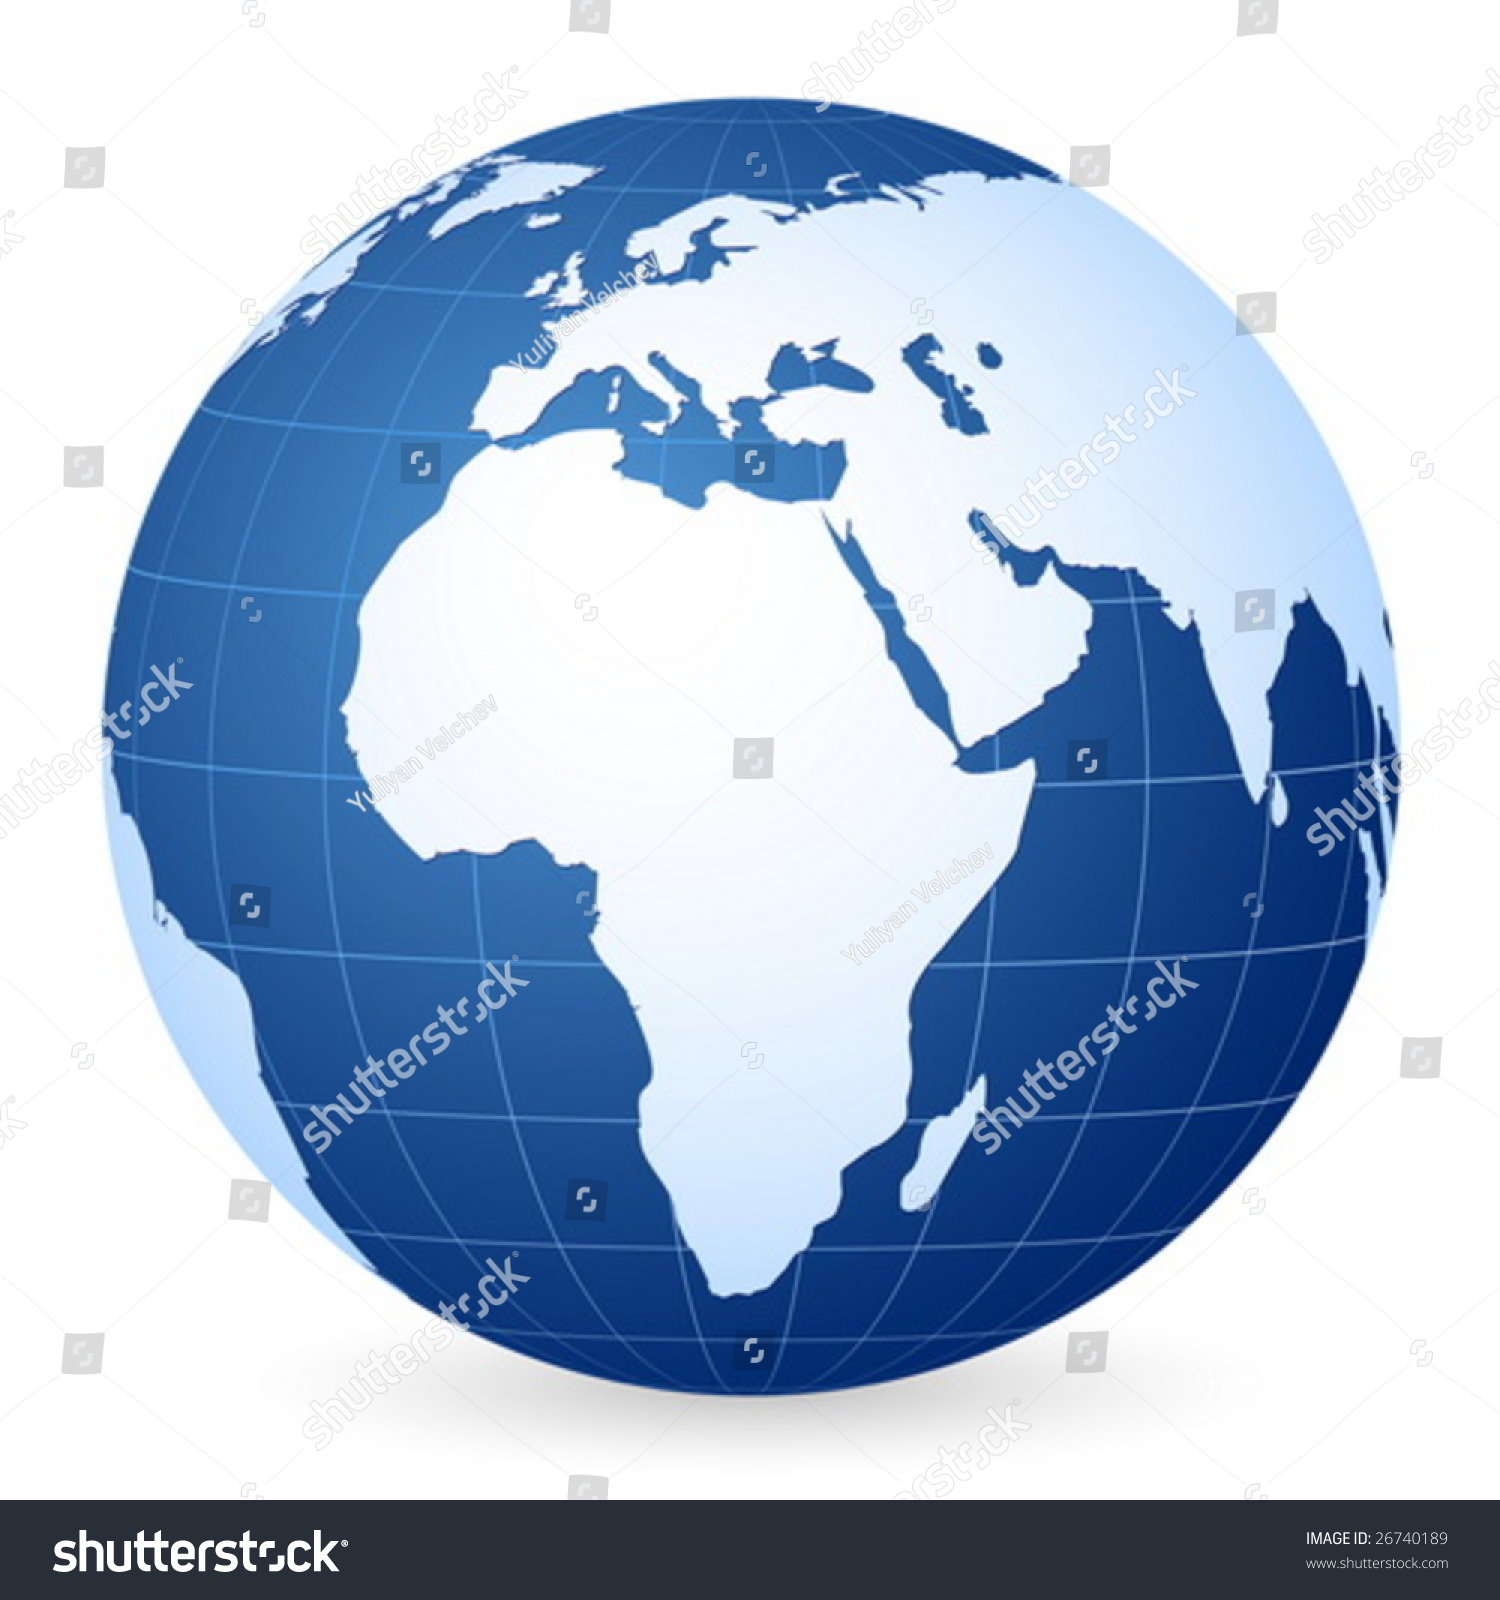 Blue World Globe On White Background Stock Vector 26740189 ...